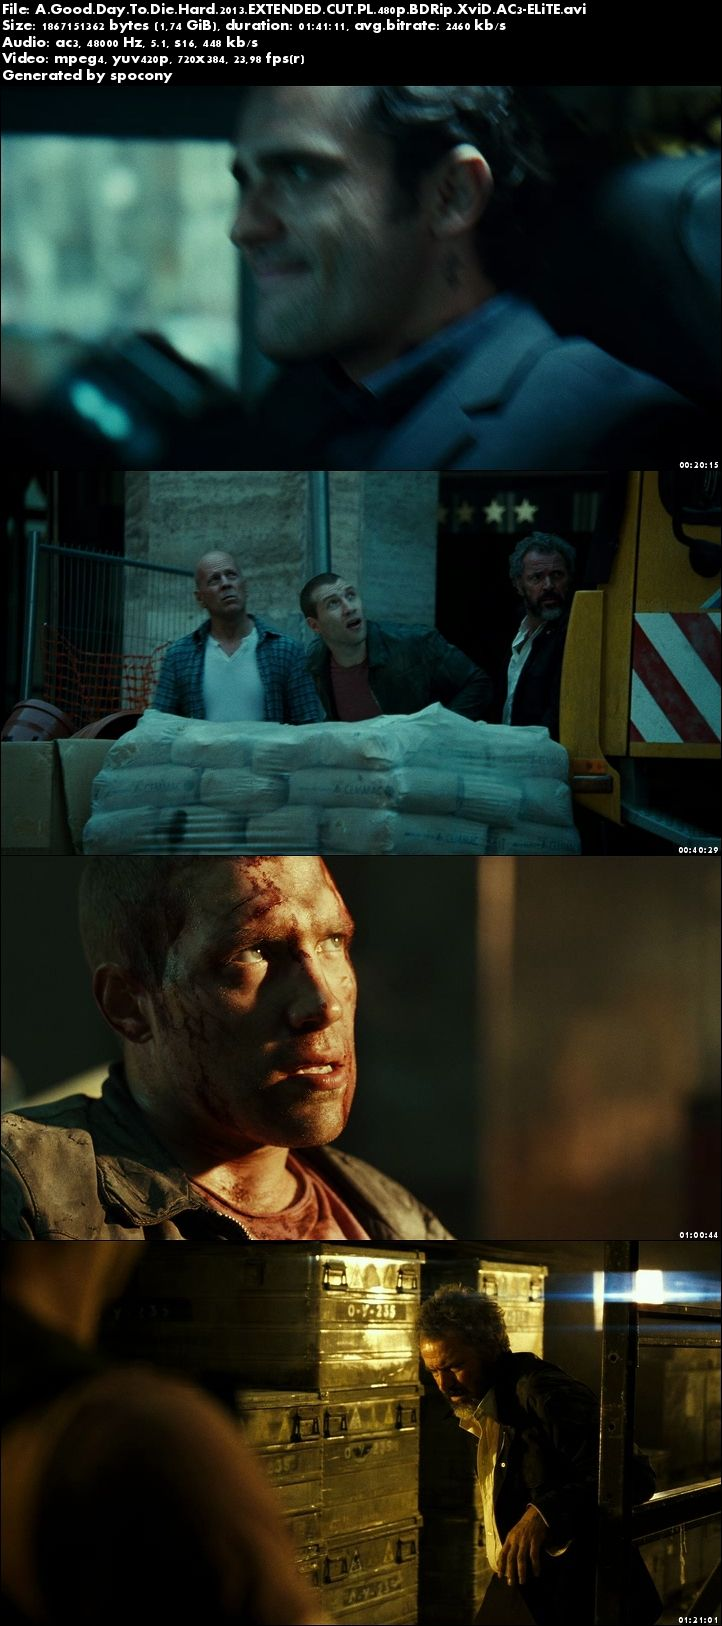 Szklana pułapka 5 / A Good Day to Die Hard (2013) EXTENDED.CUT.PL.480p.BDRip.XviD.AC3-ELiTE [Lektor PL]